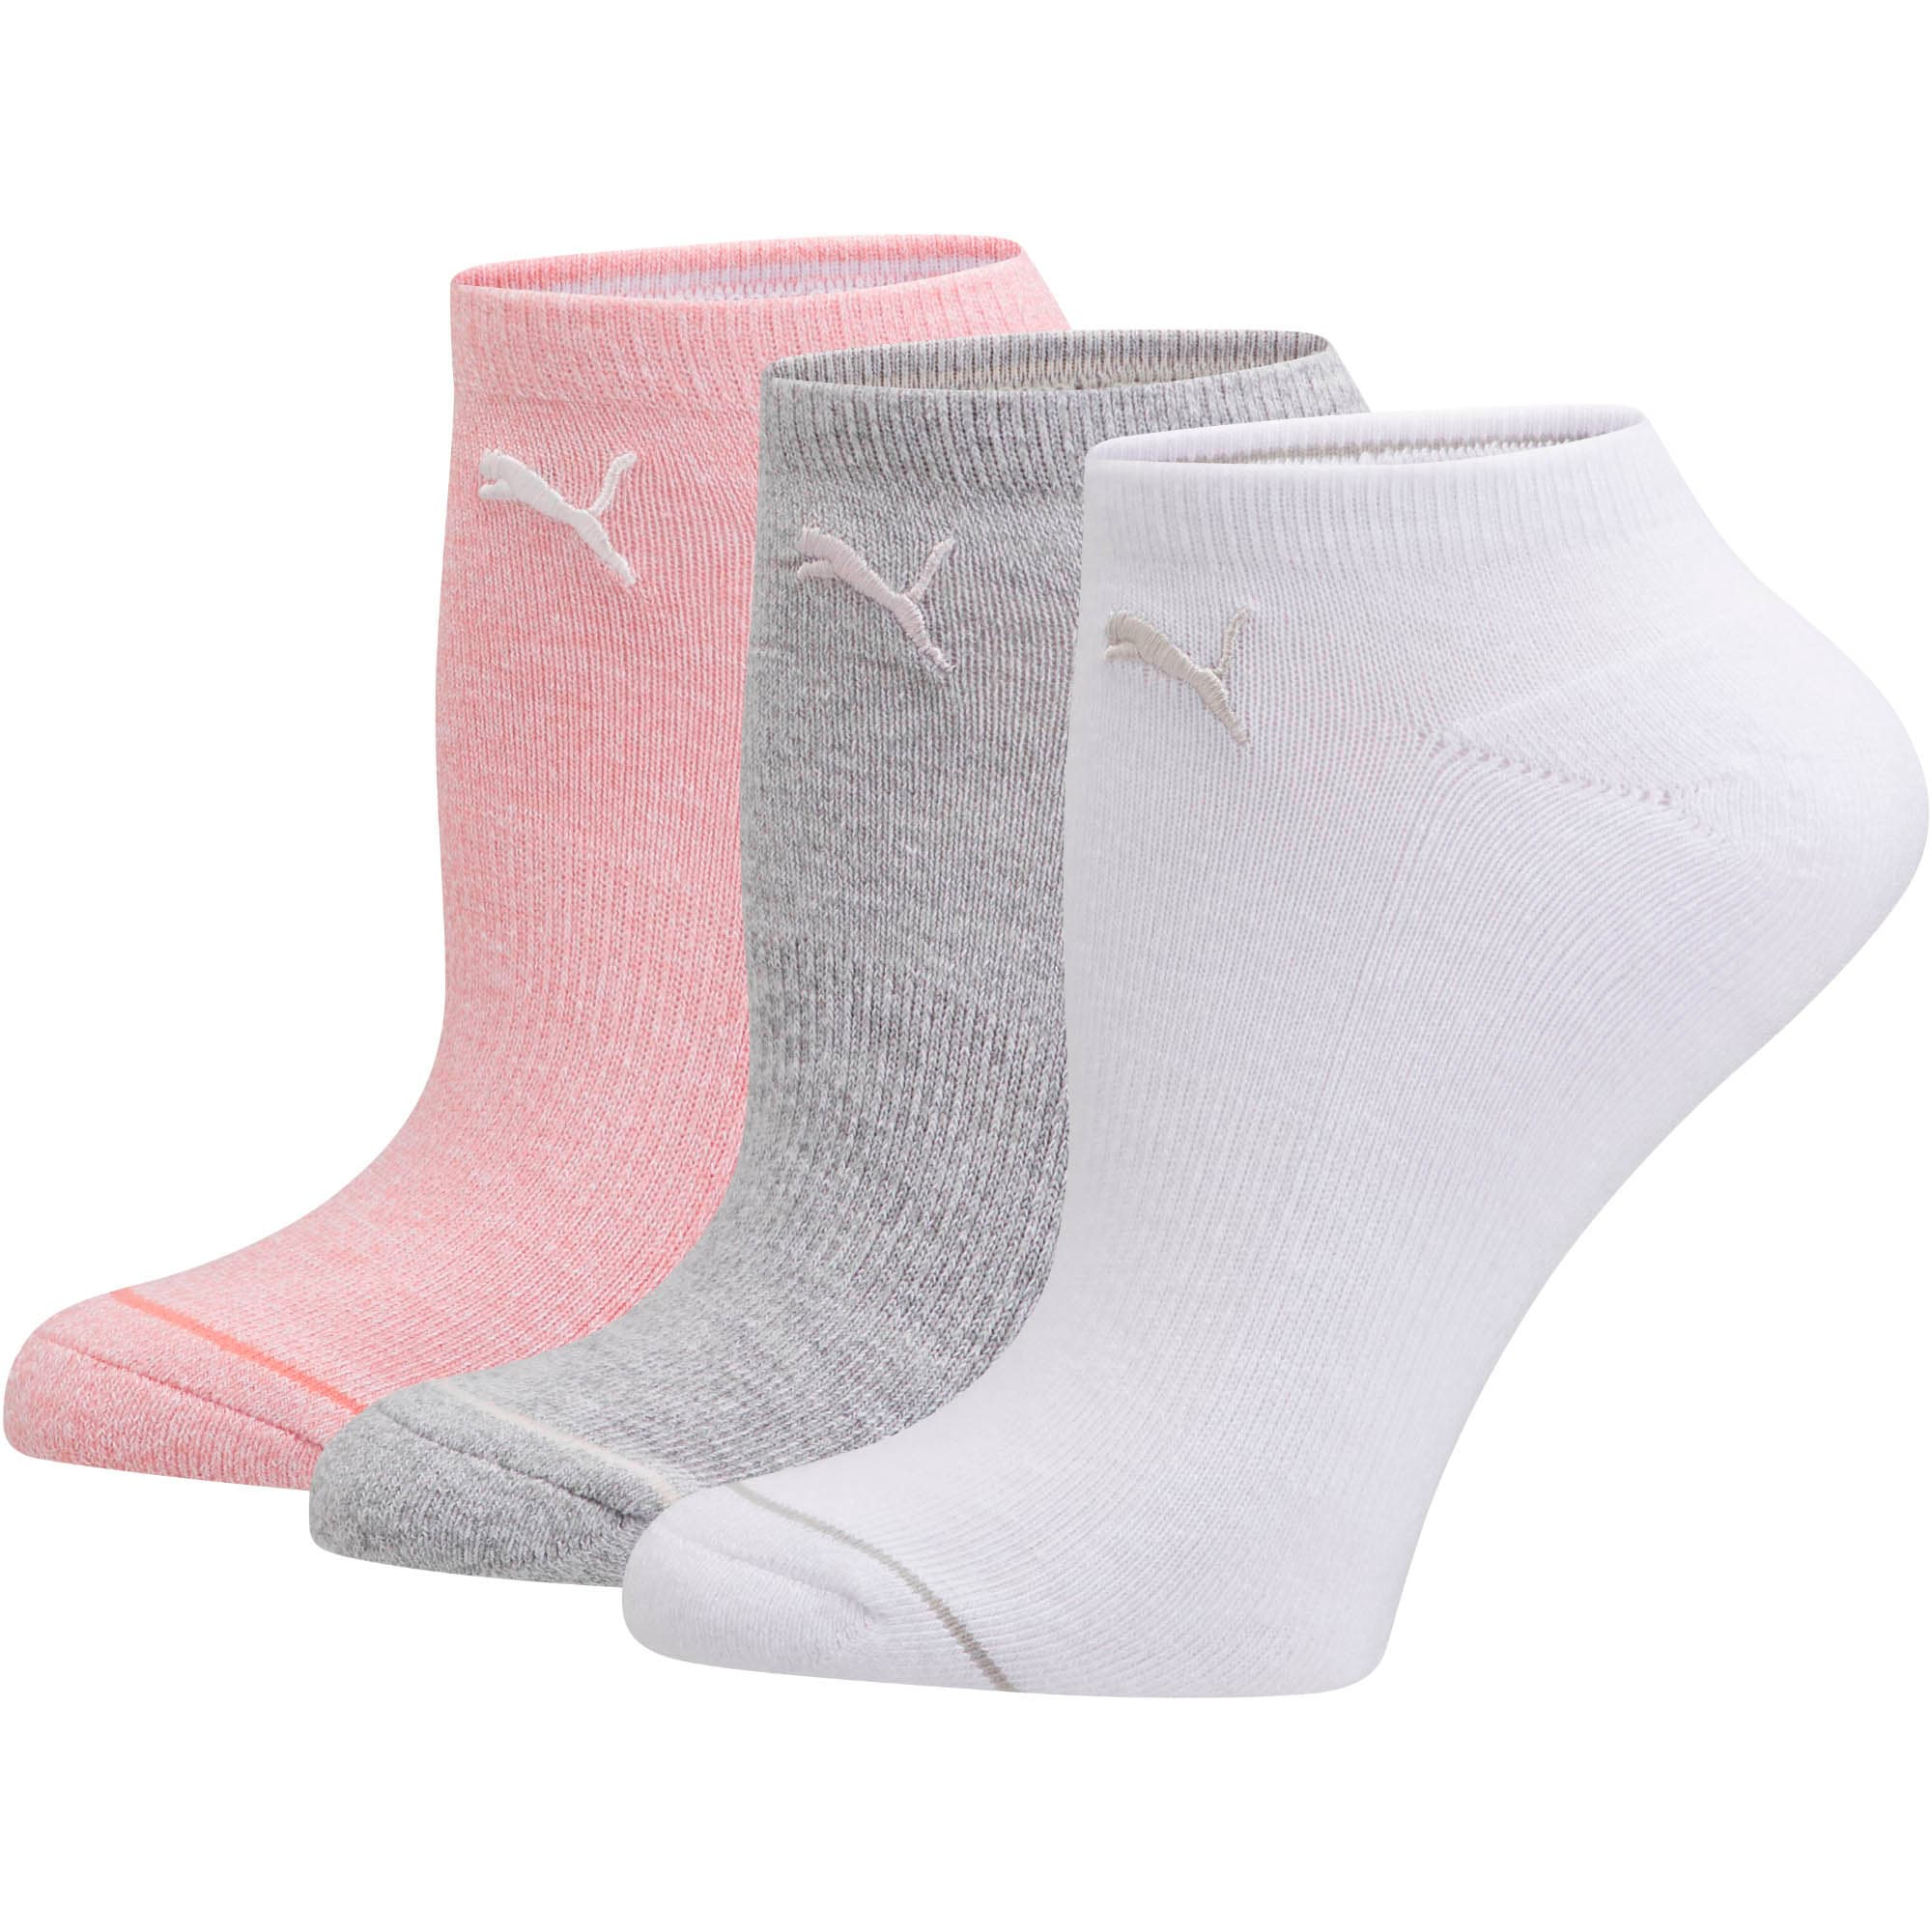 Women's No Show Socks [3 Pack], PSTL COMBO, large